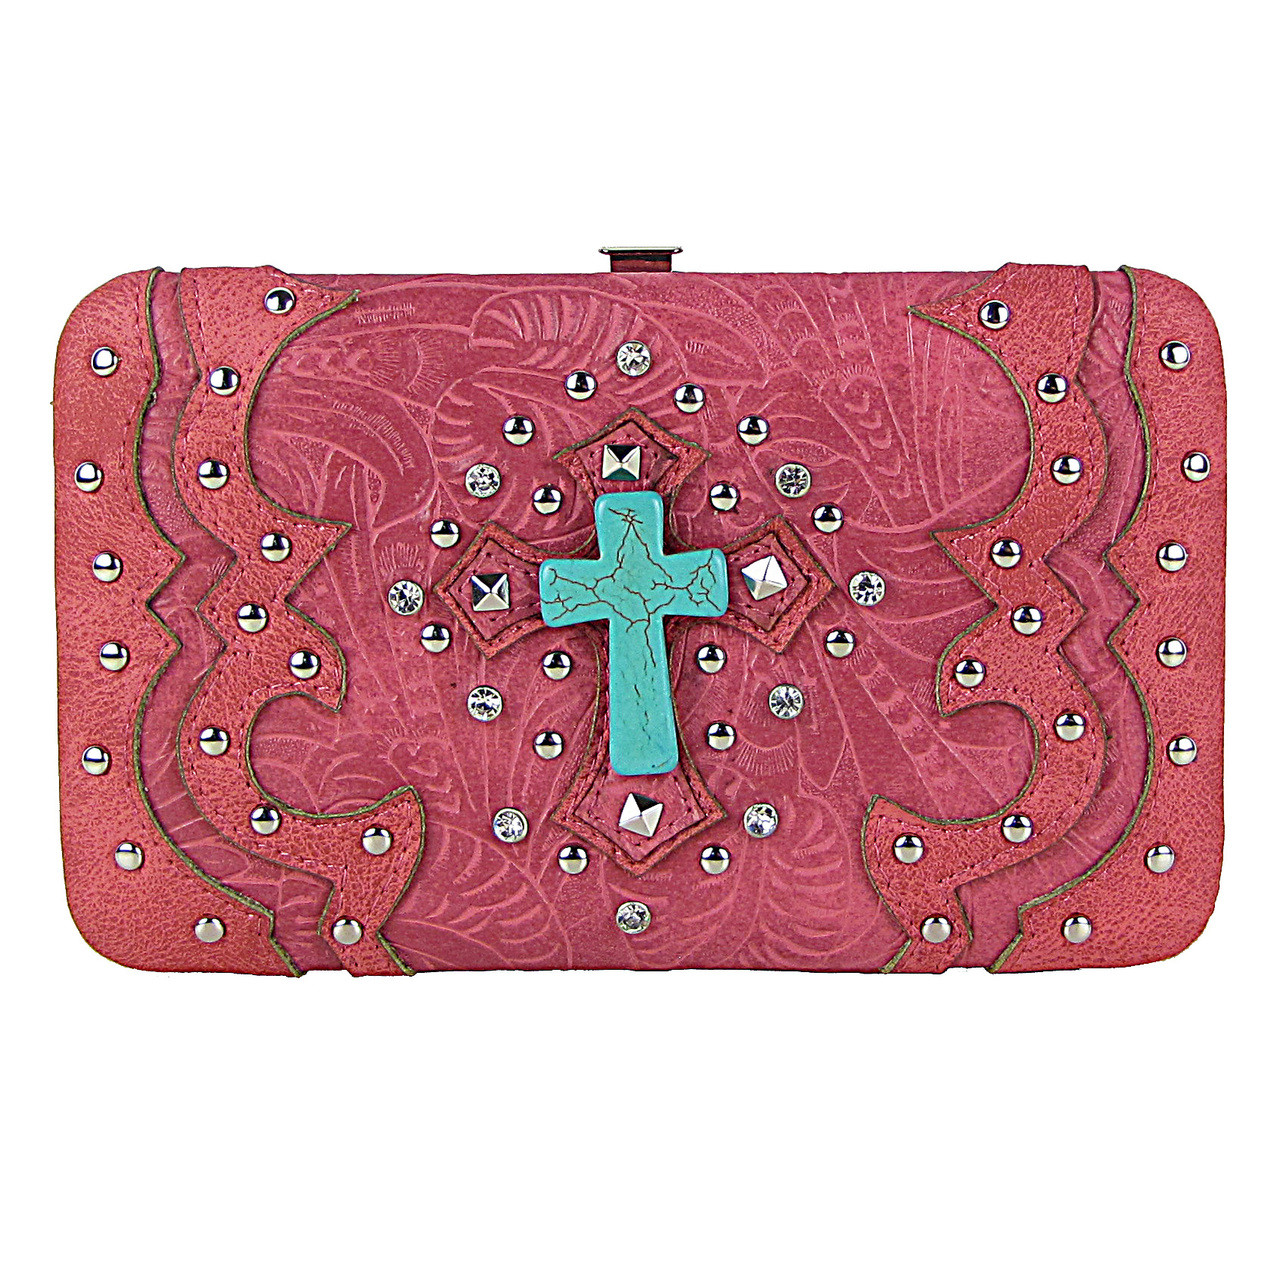 HOT PINK WESTERN TOOLED STUDDED TURQUOISE CROSS FLAT THICK WALLET FW2-0418HPK